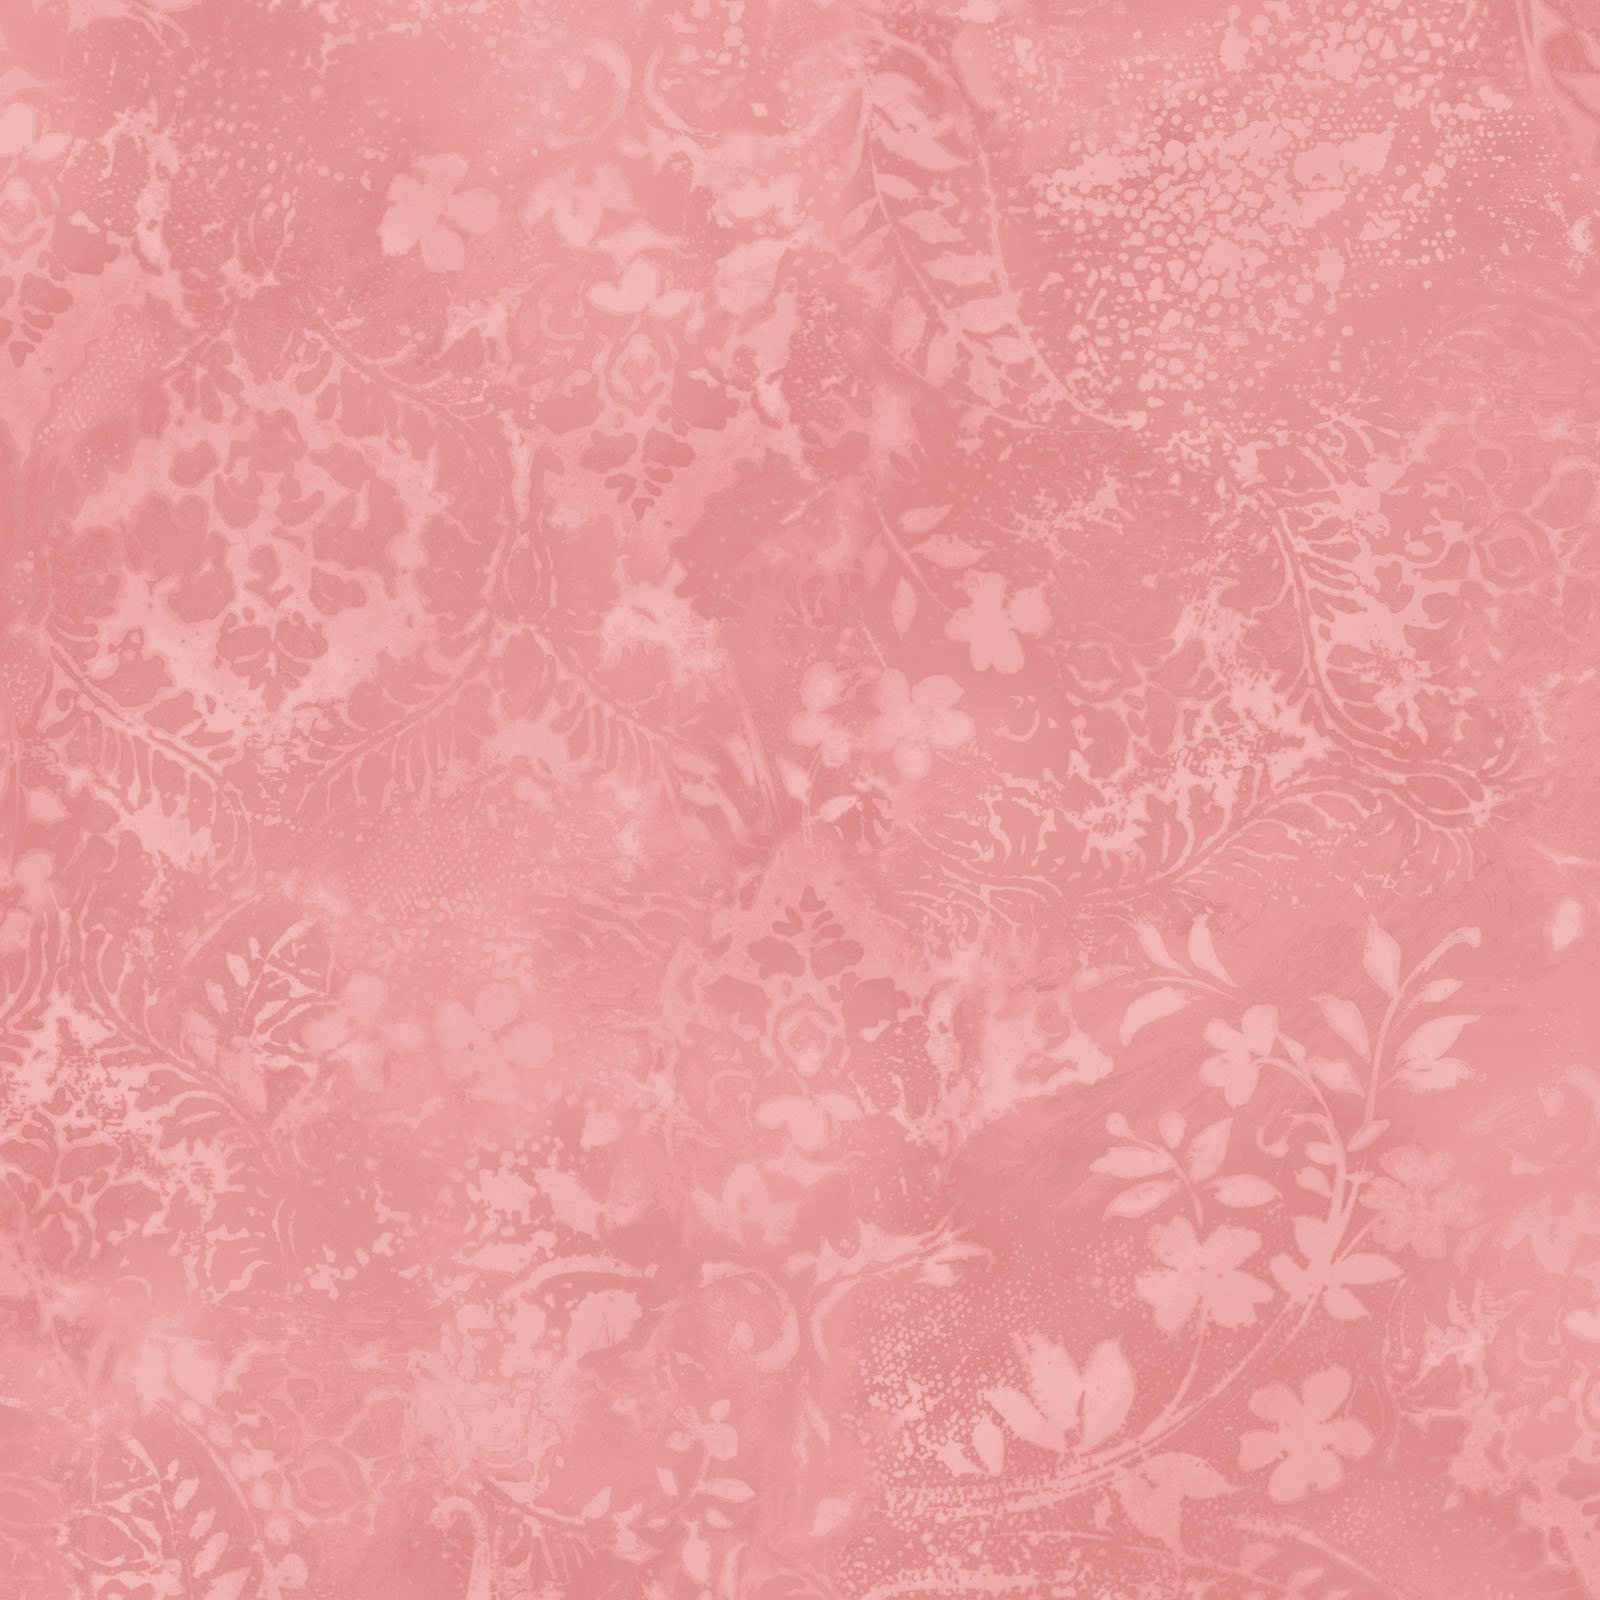 EESC-QBD105 P - BEAUTIFUL BACKING 108 VINTAGE DAMASK BY MAYWOOD PINK - ARRIVING IN MAY 2021